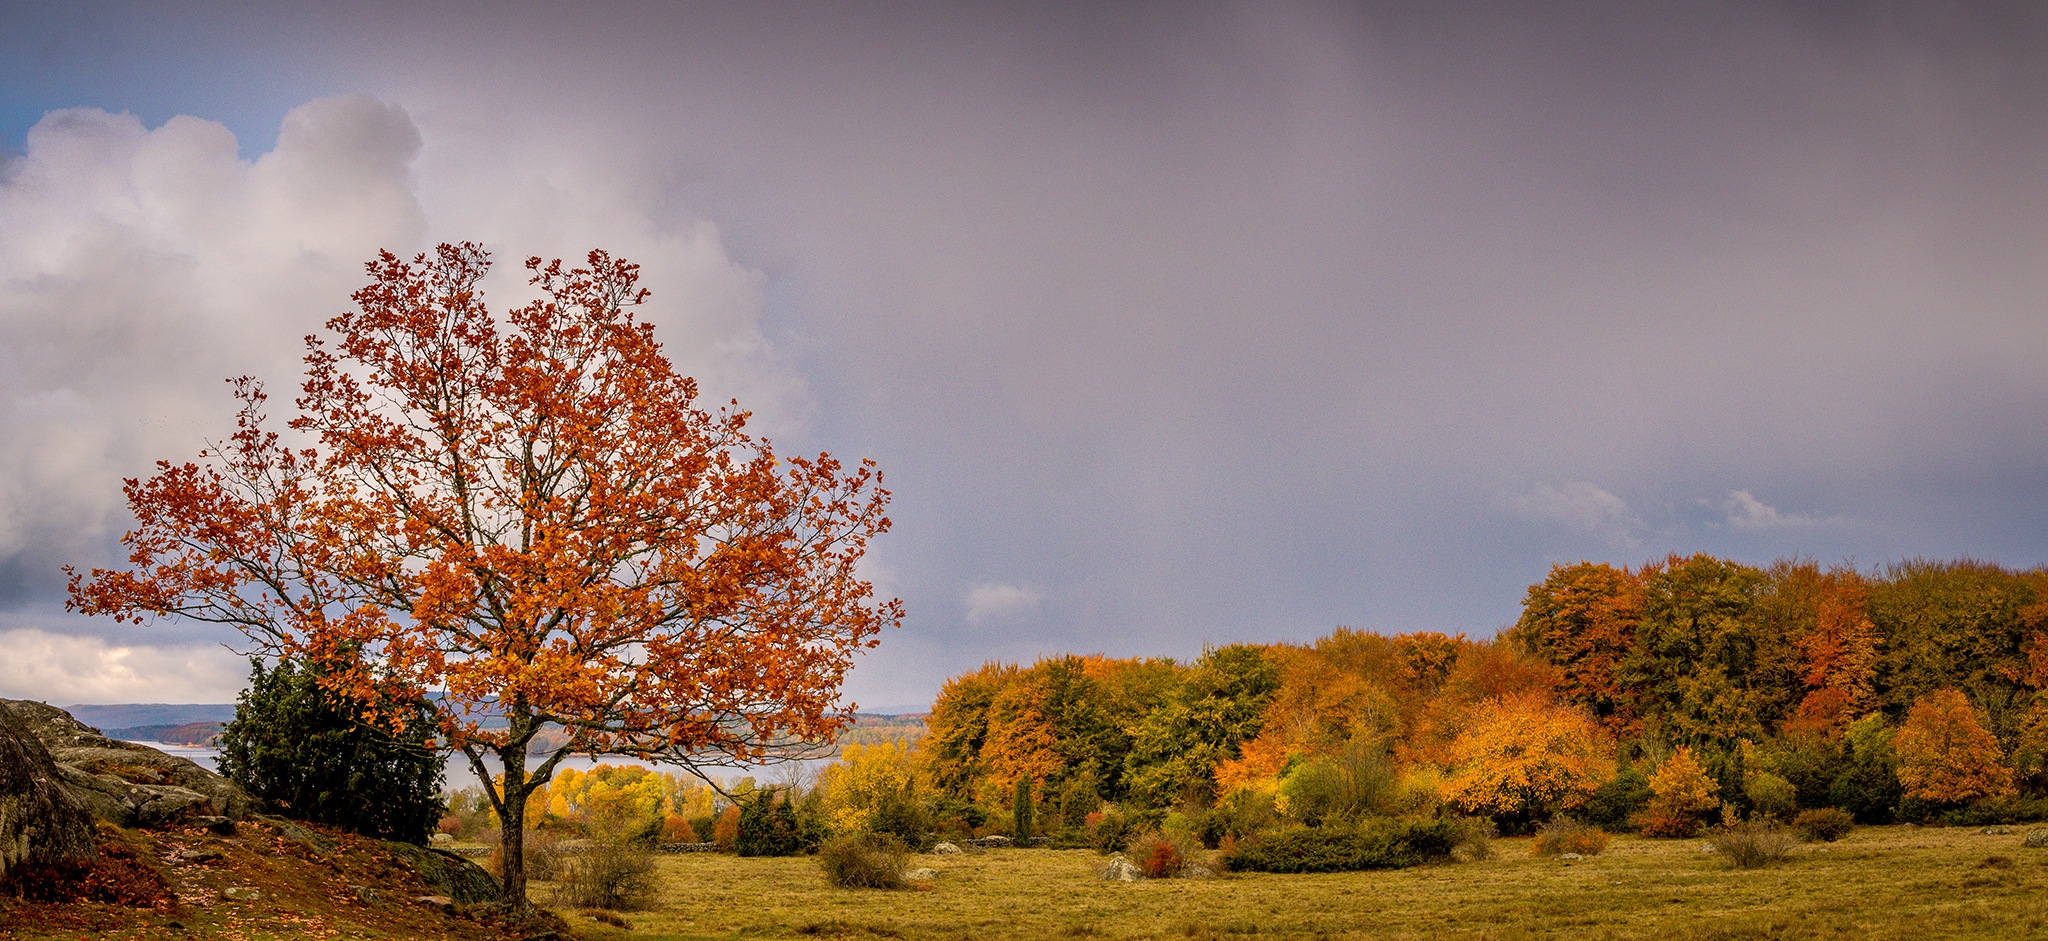 Young oaktree in autumn landscape by elisah